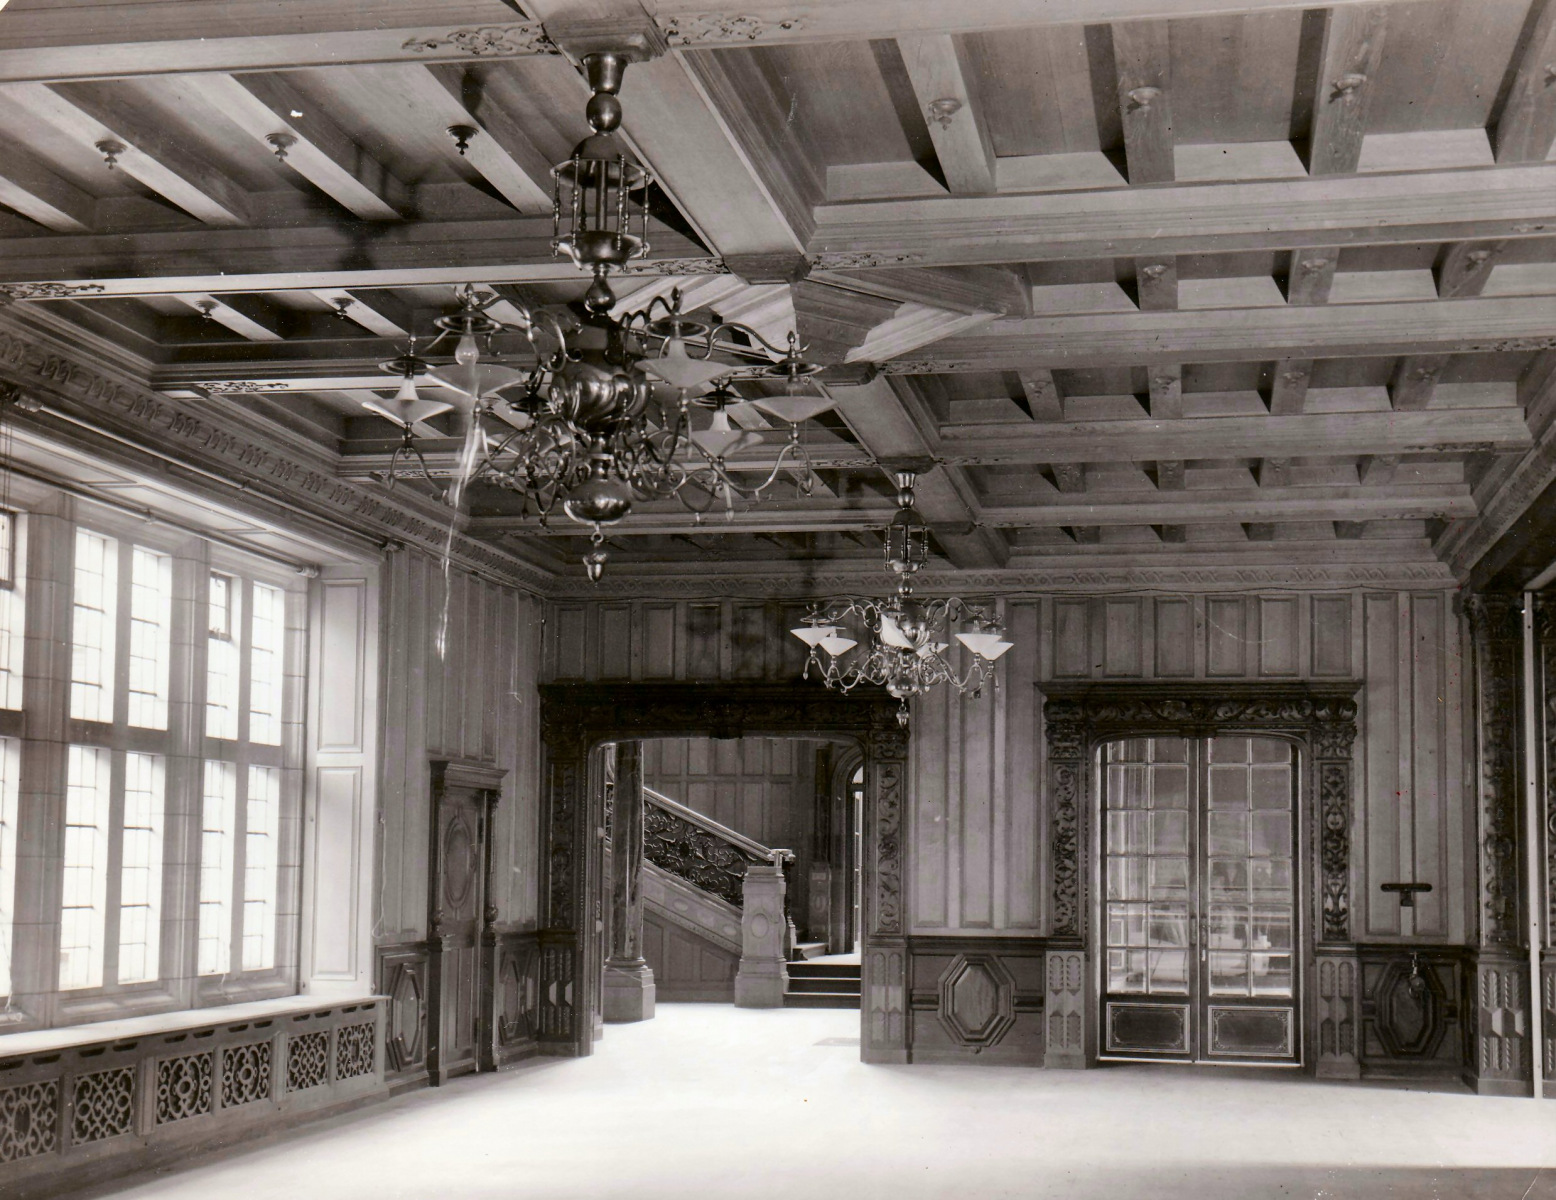 40.-The-Hall-showing-wooden-ceiling